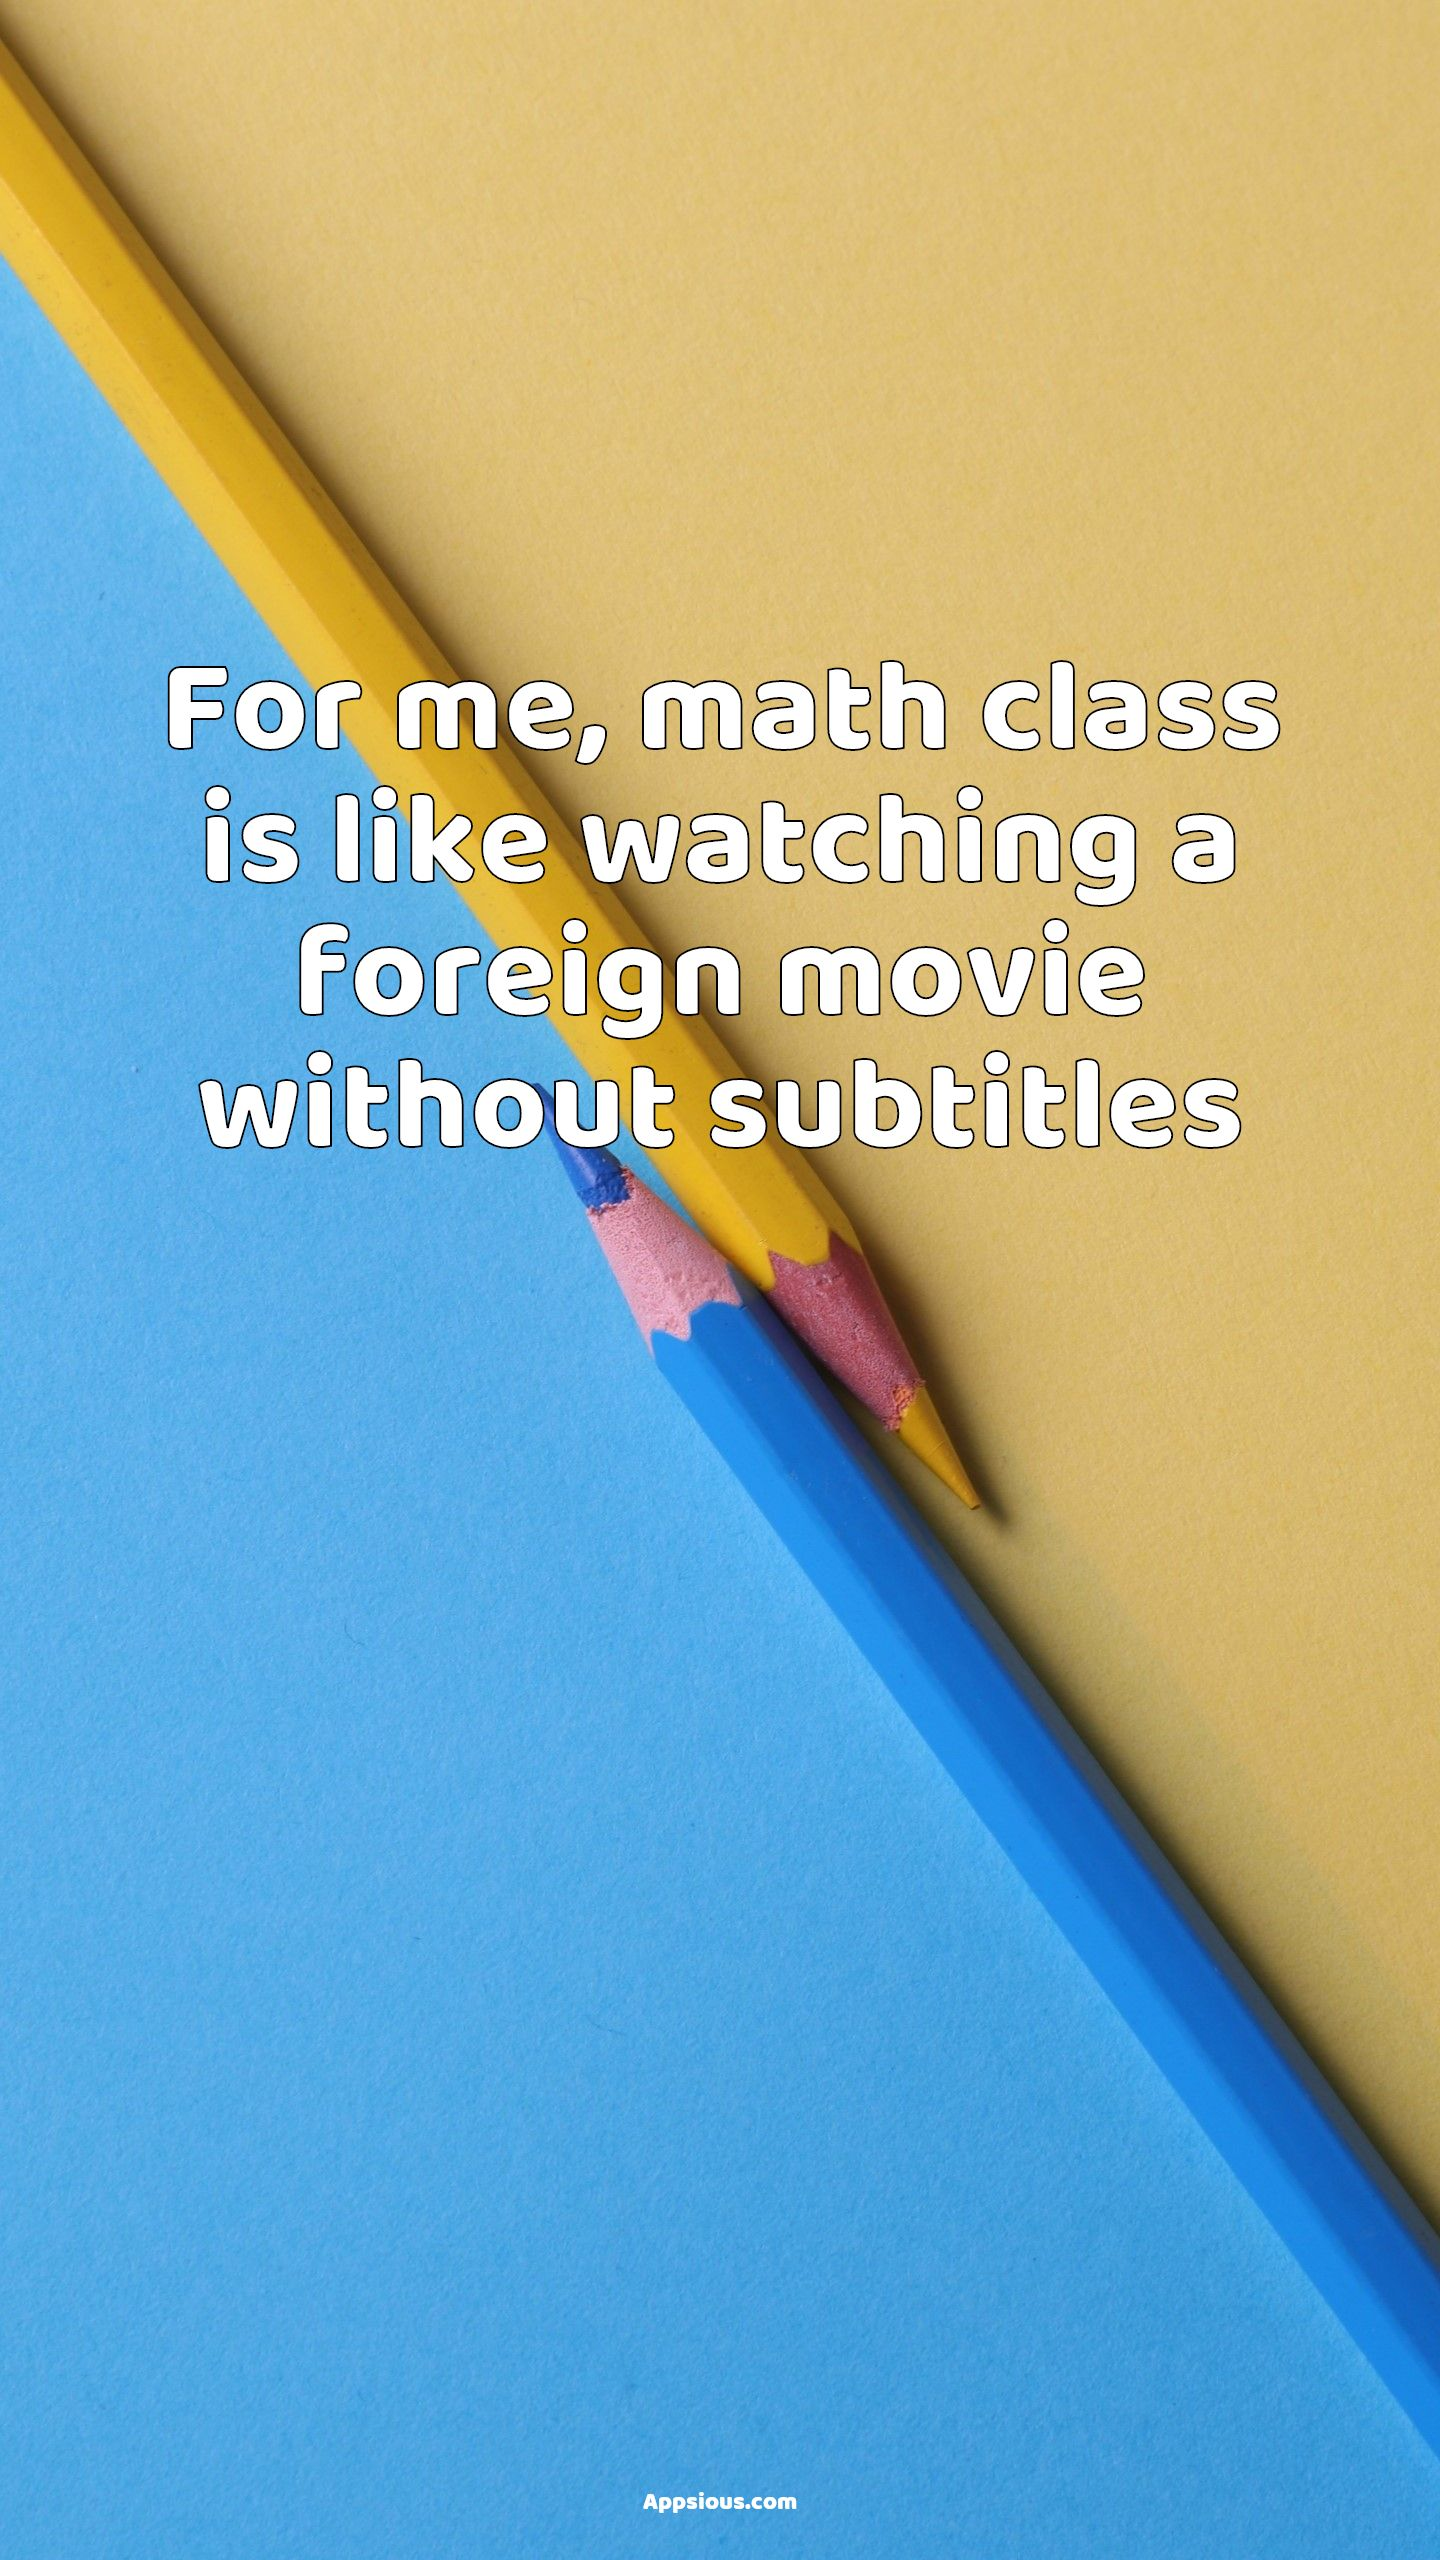 For me, math class is like watching a foreign movie without subtitles